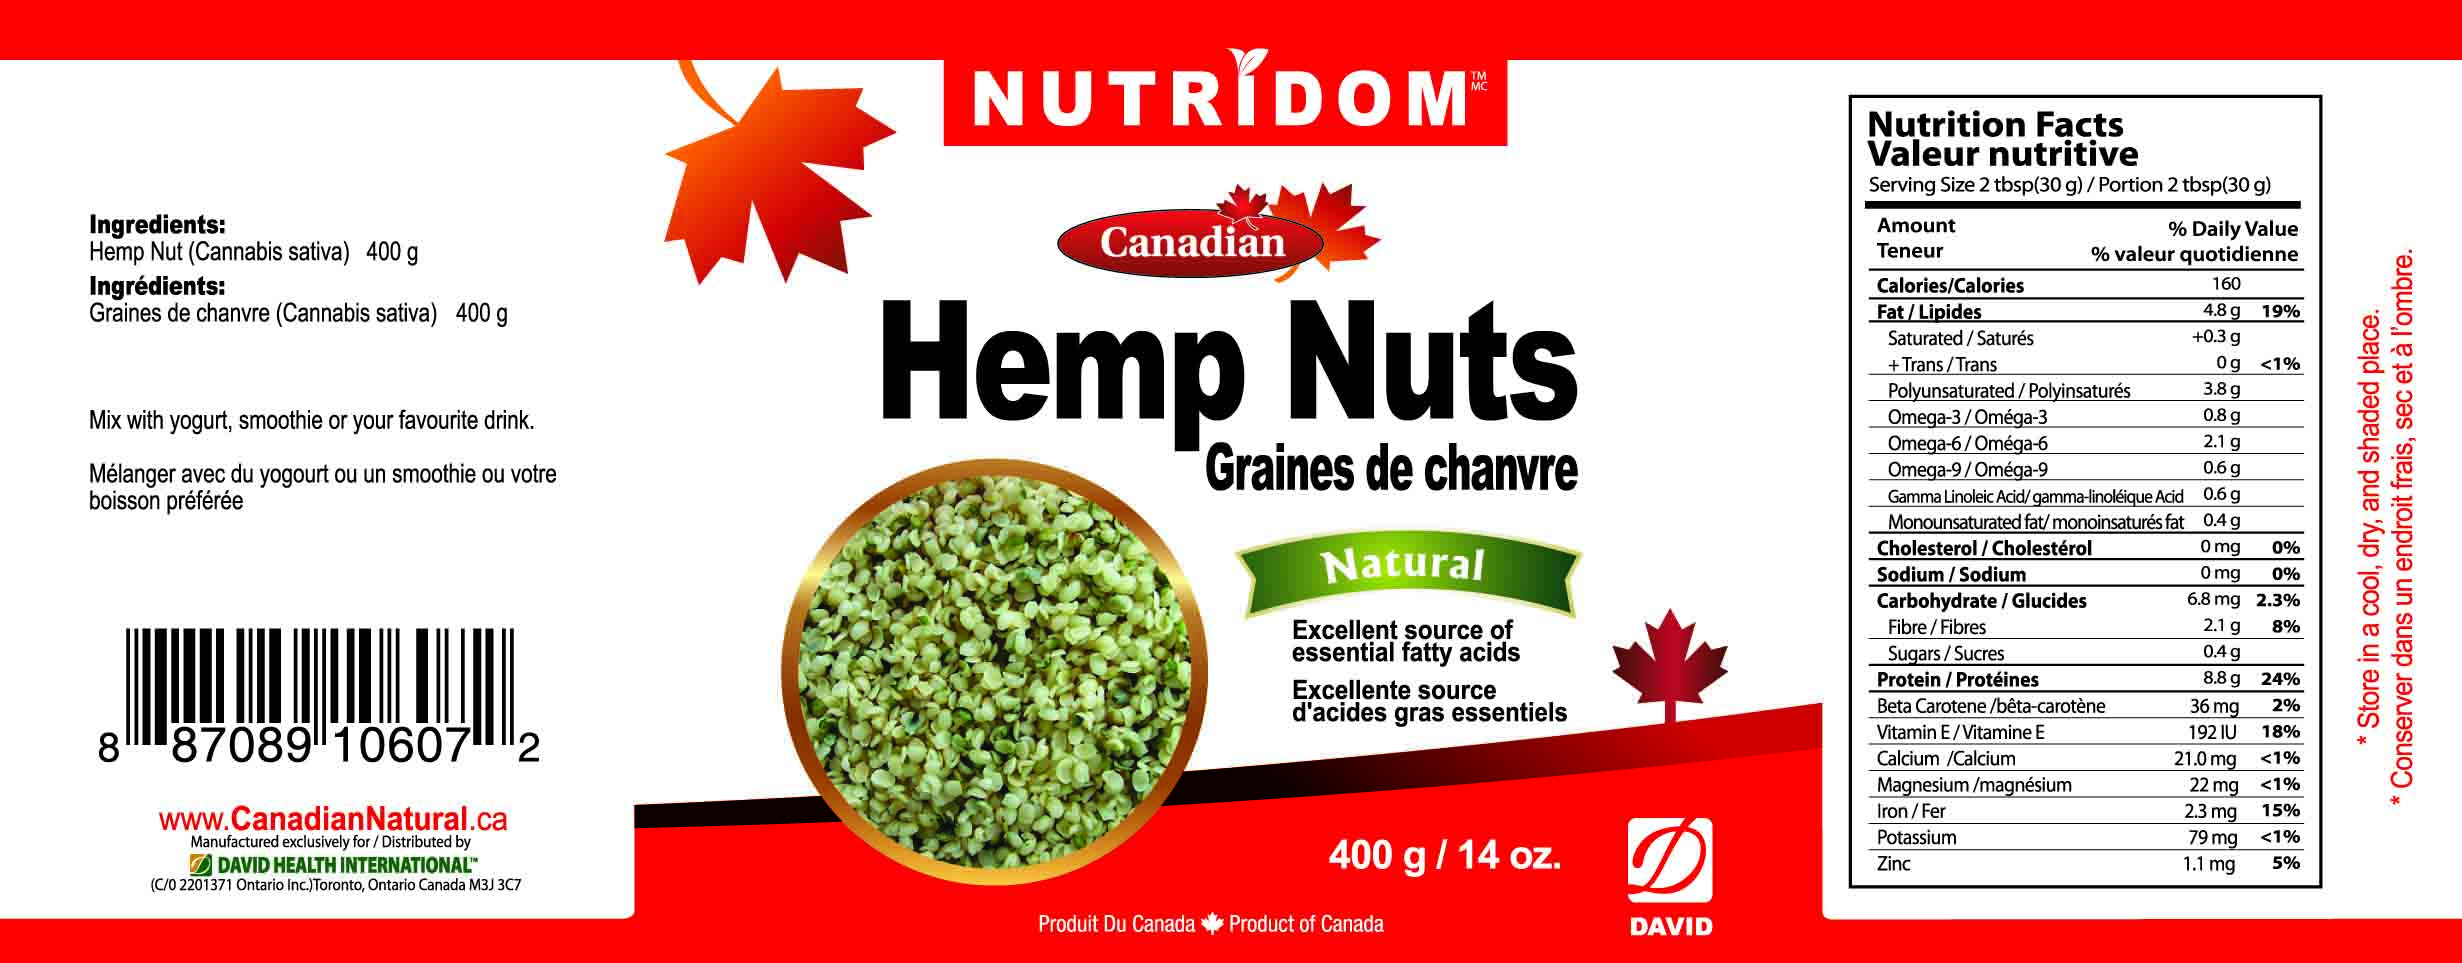 NUTRIDOM HEMP NUTS 400G